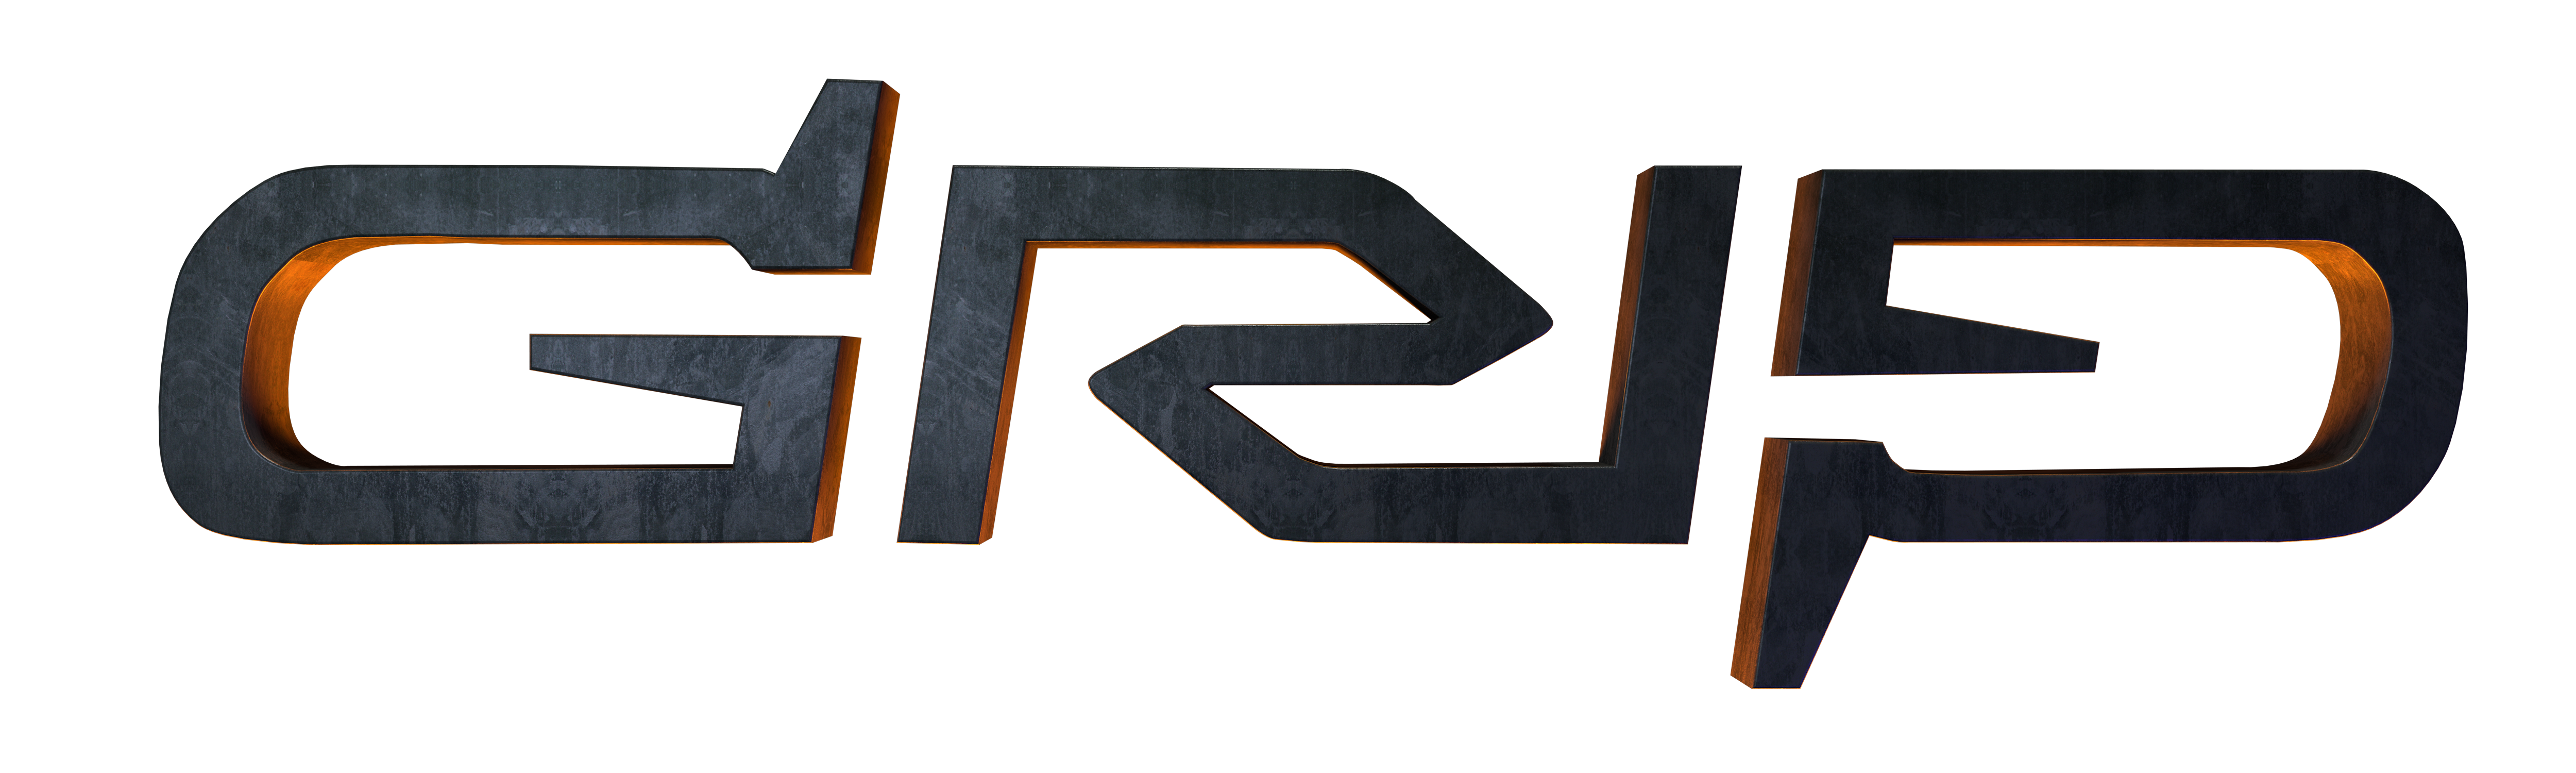 High Res Grip Logo Png.